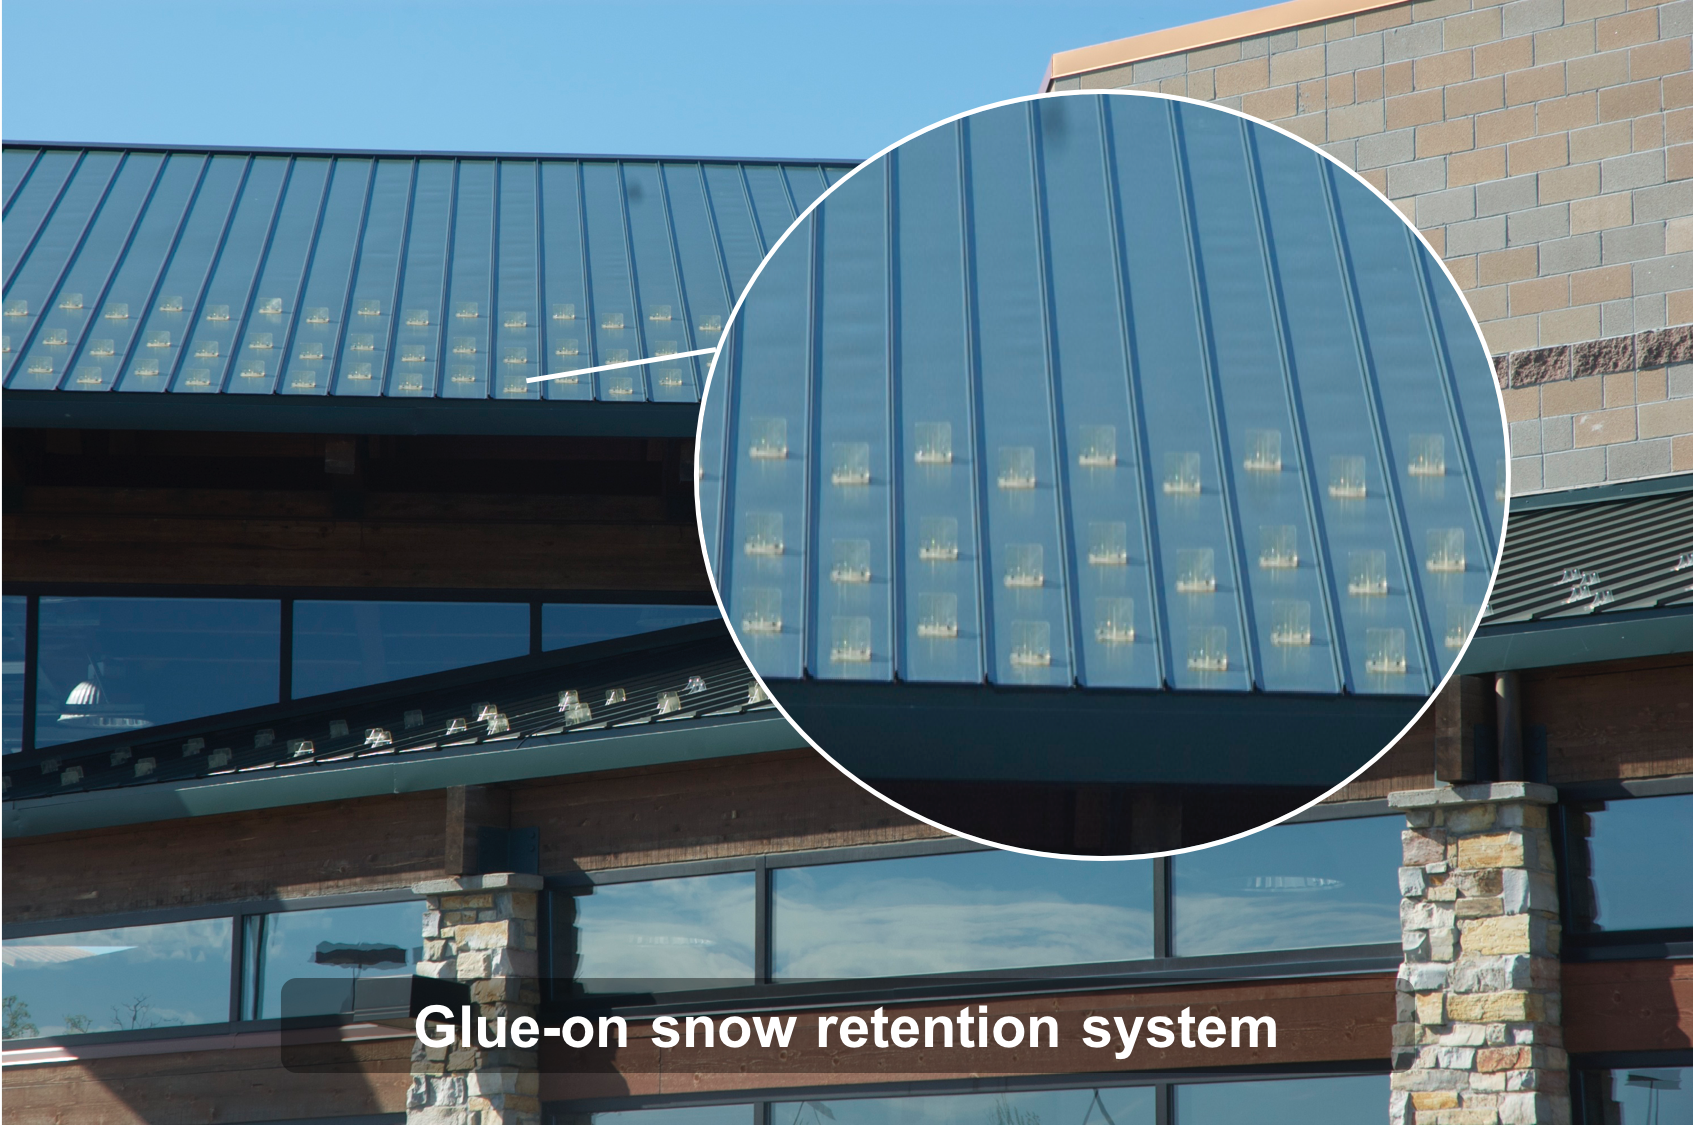 Glue-on snow retention system